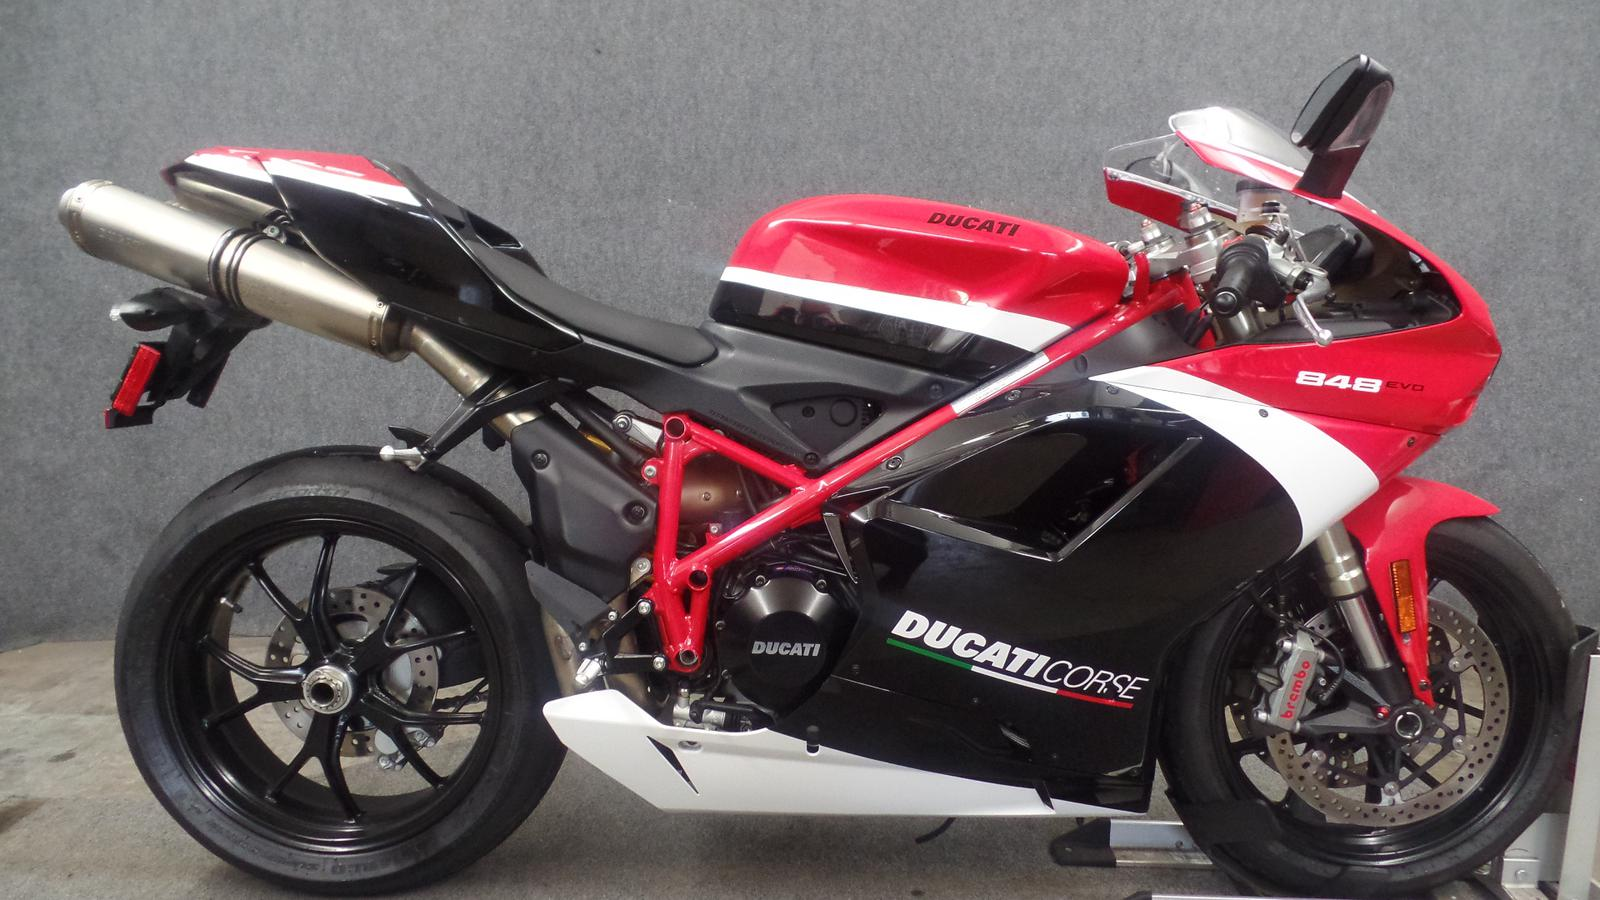 2012 Ducati Evo Corse 848 Special Edition, motorcycle listing